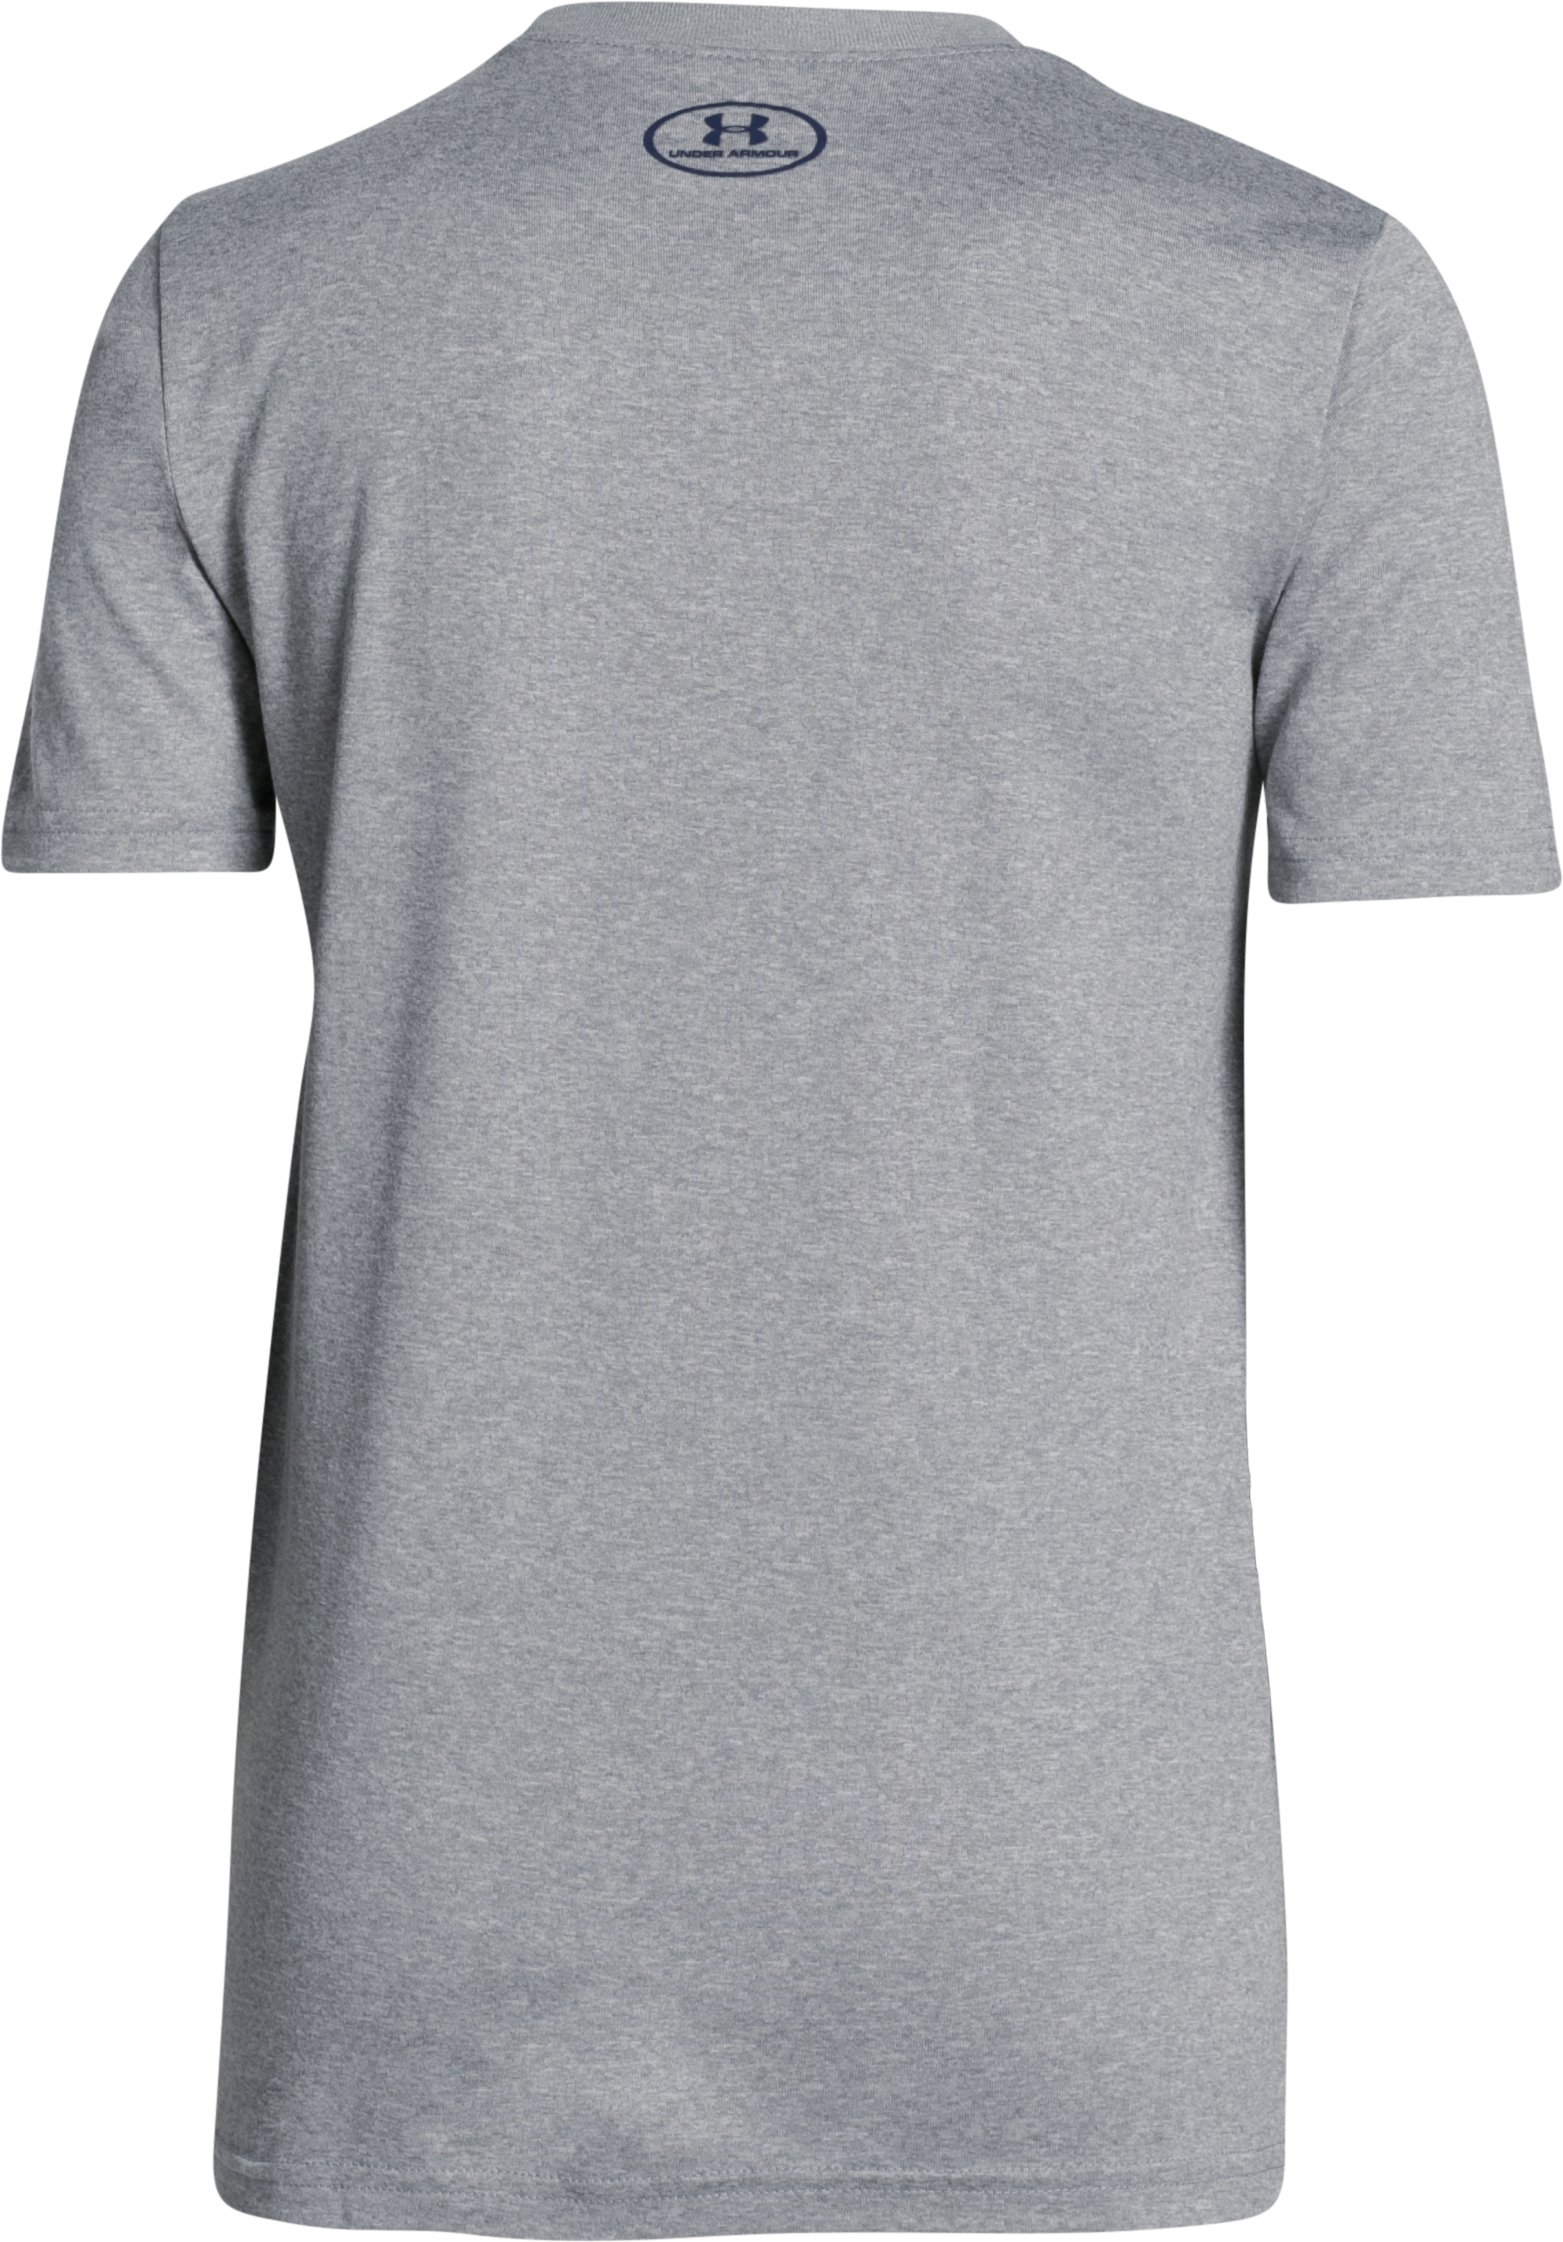 Boys' Under Armour® Alter Ego The Force T-Shirt, True Gray Heather, undefined